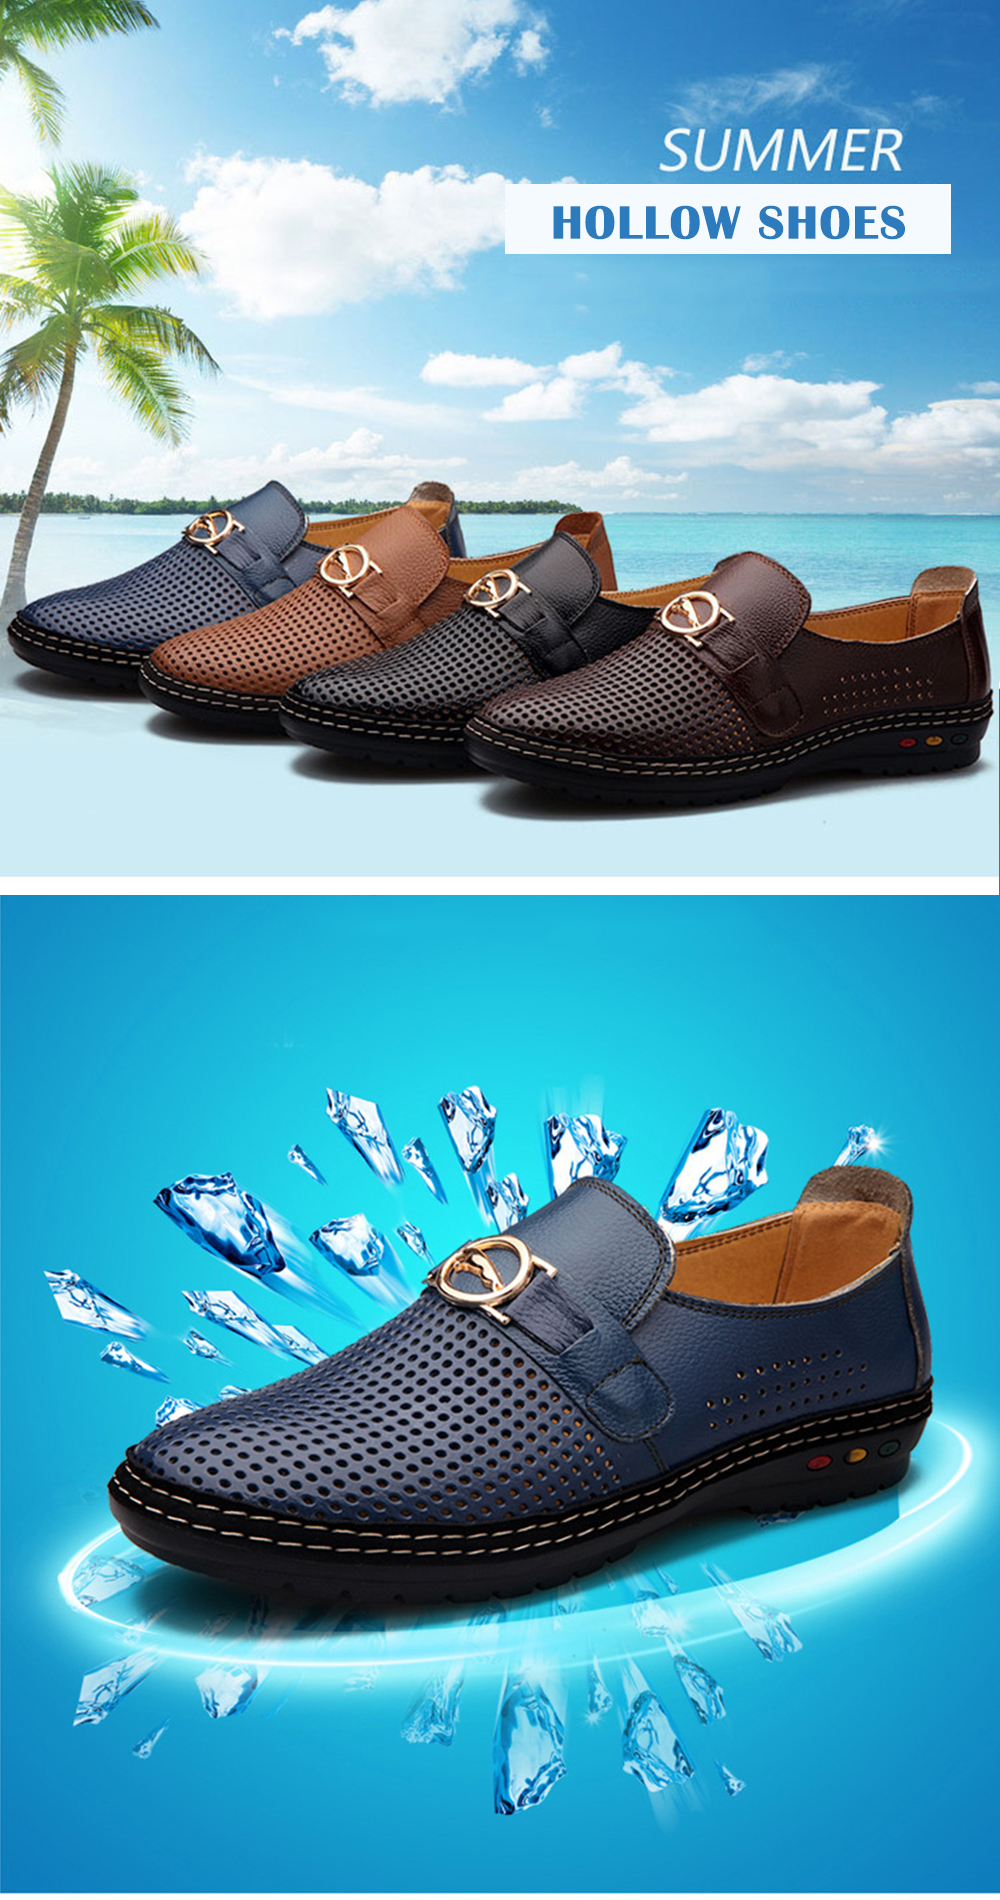 The New Style Casual Slip-on Hollow Breathable Shoes for Men